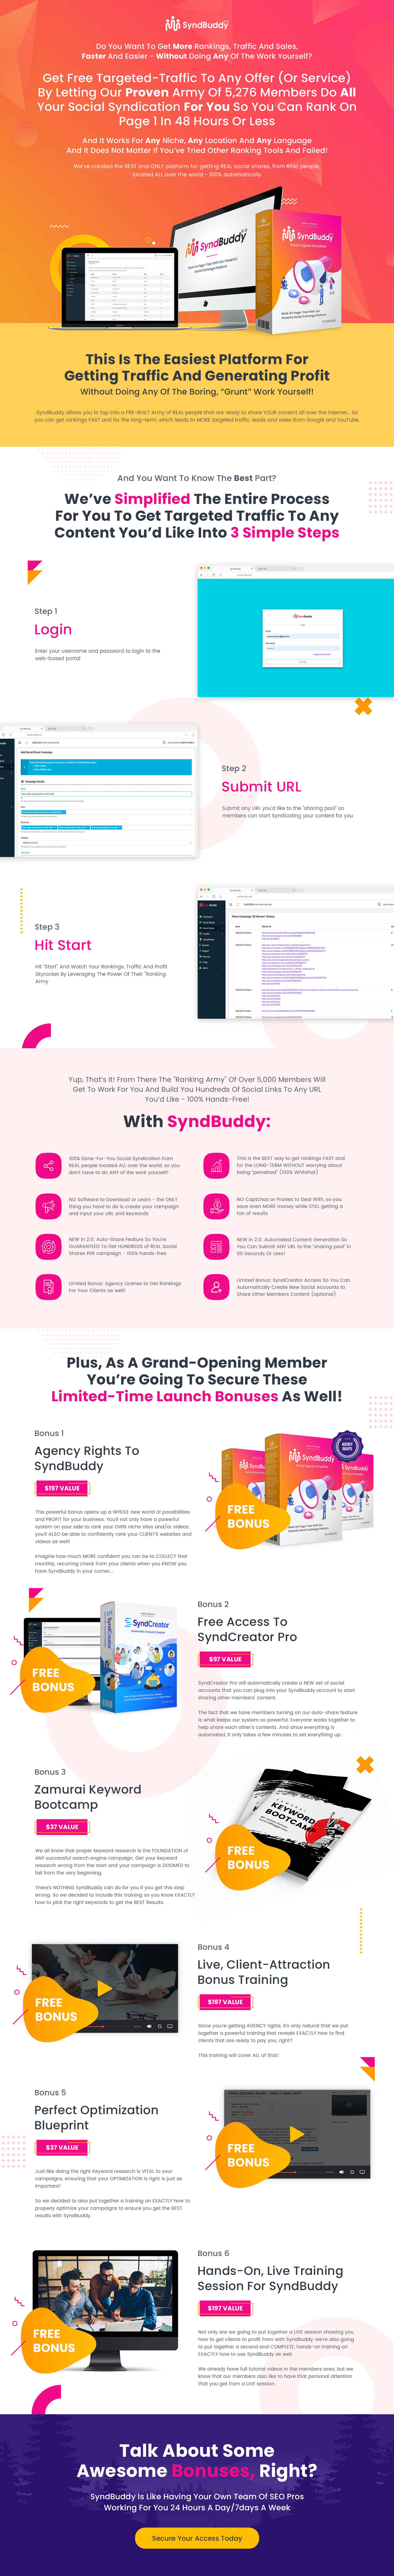 DFY Suite Agency Review - Why should you buy it? 6